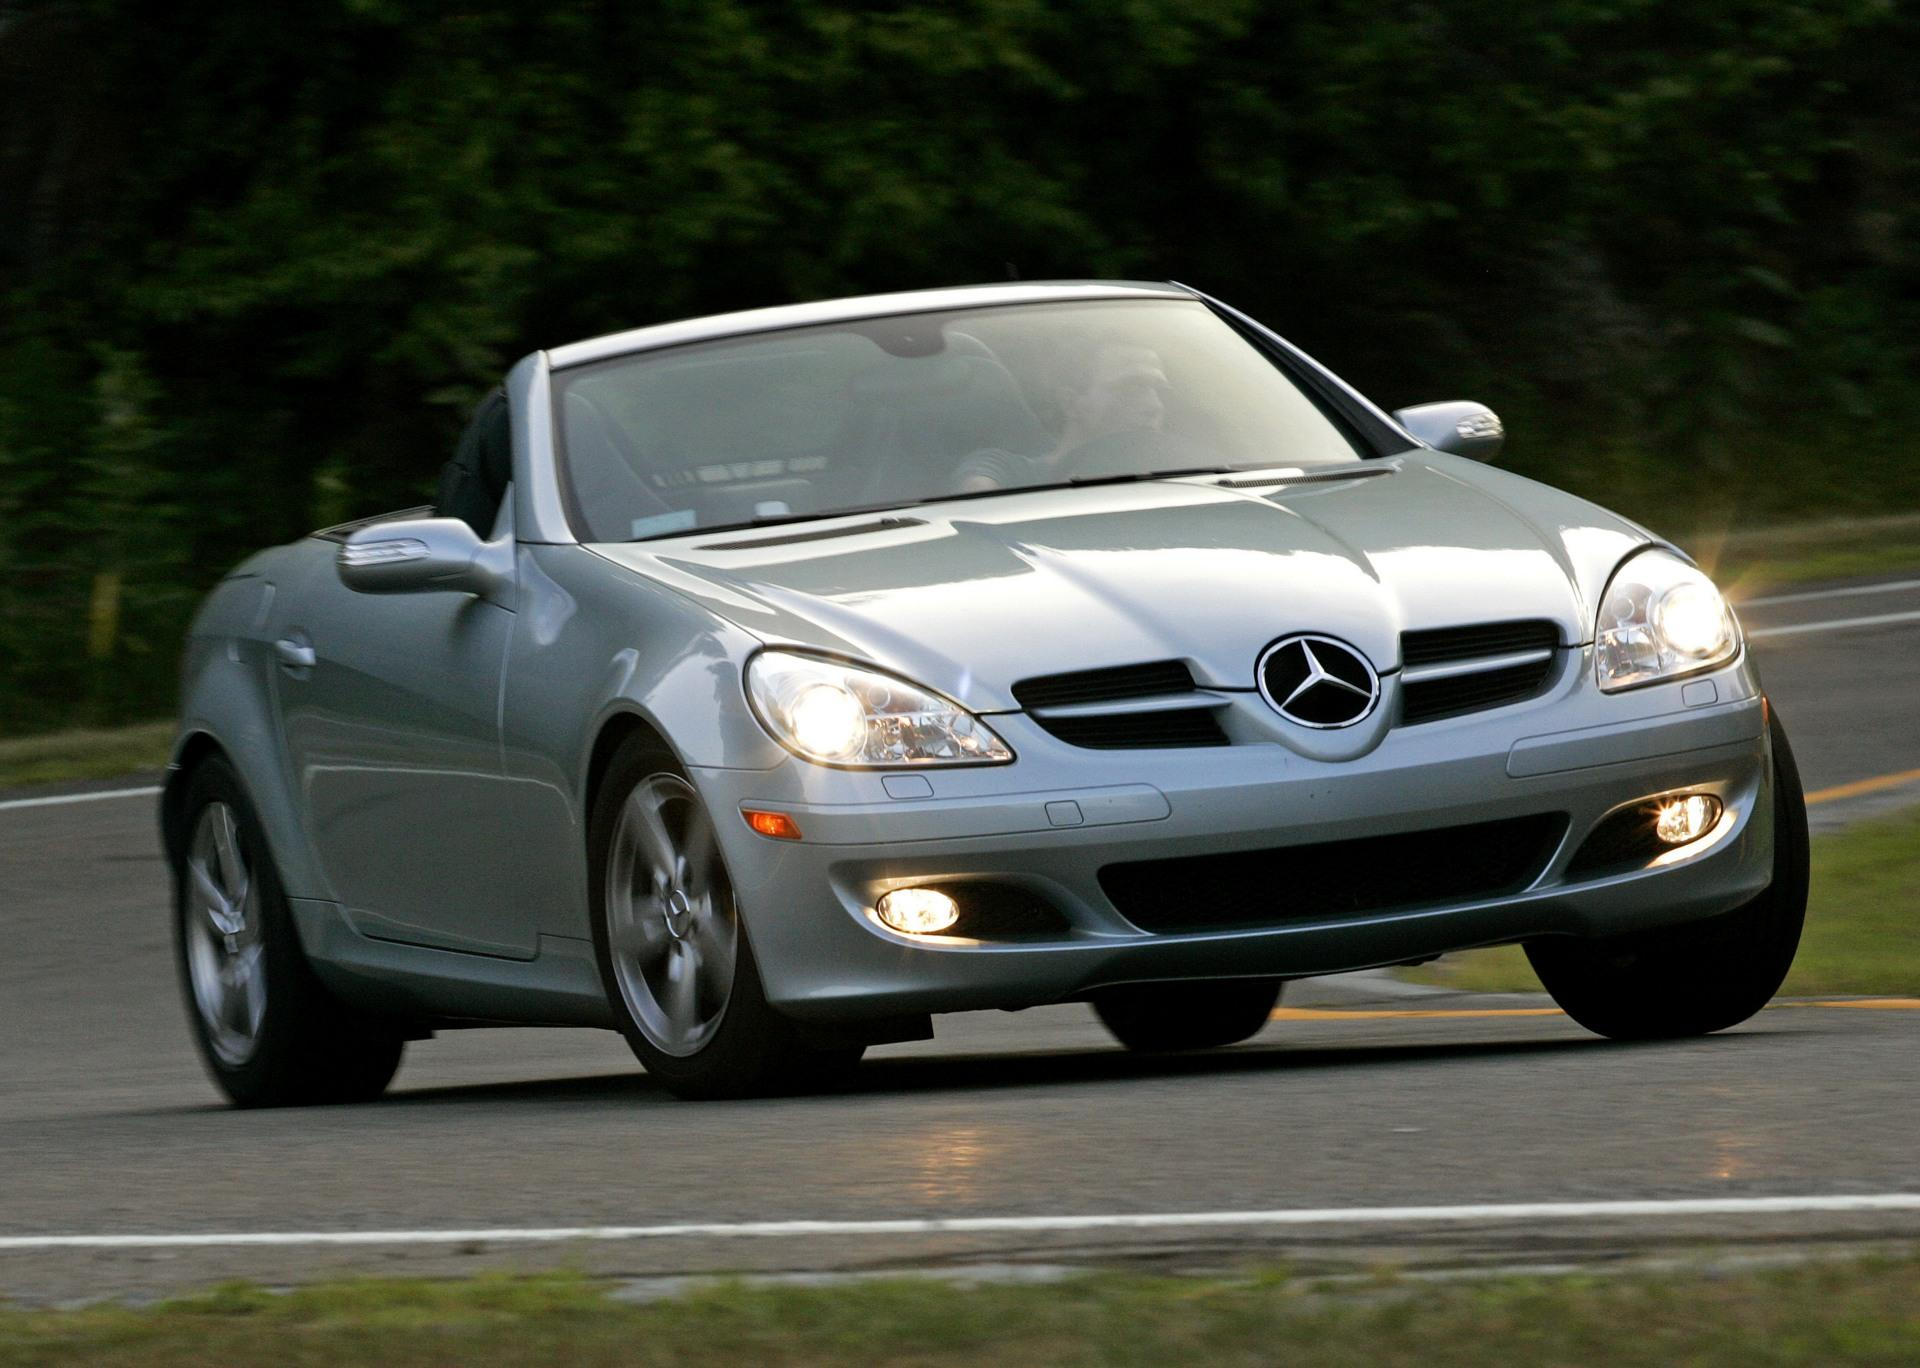 Mercedes-Benz SLK 280 photo 09